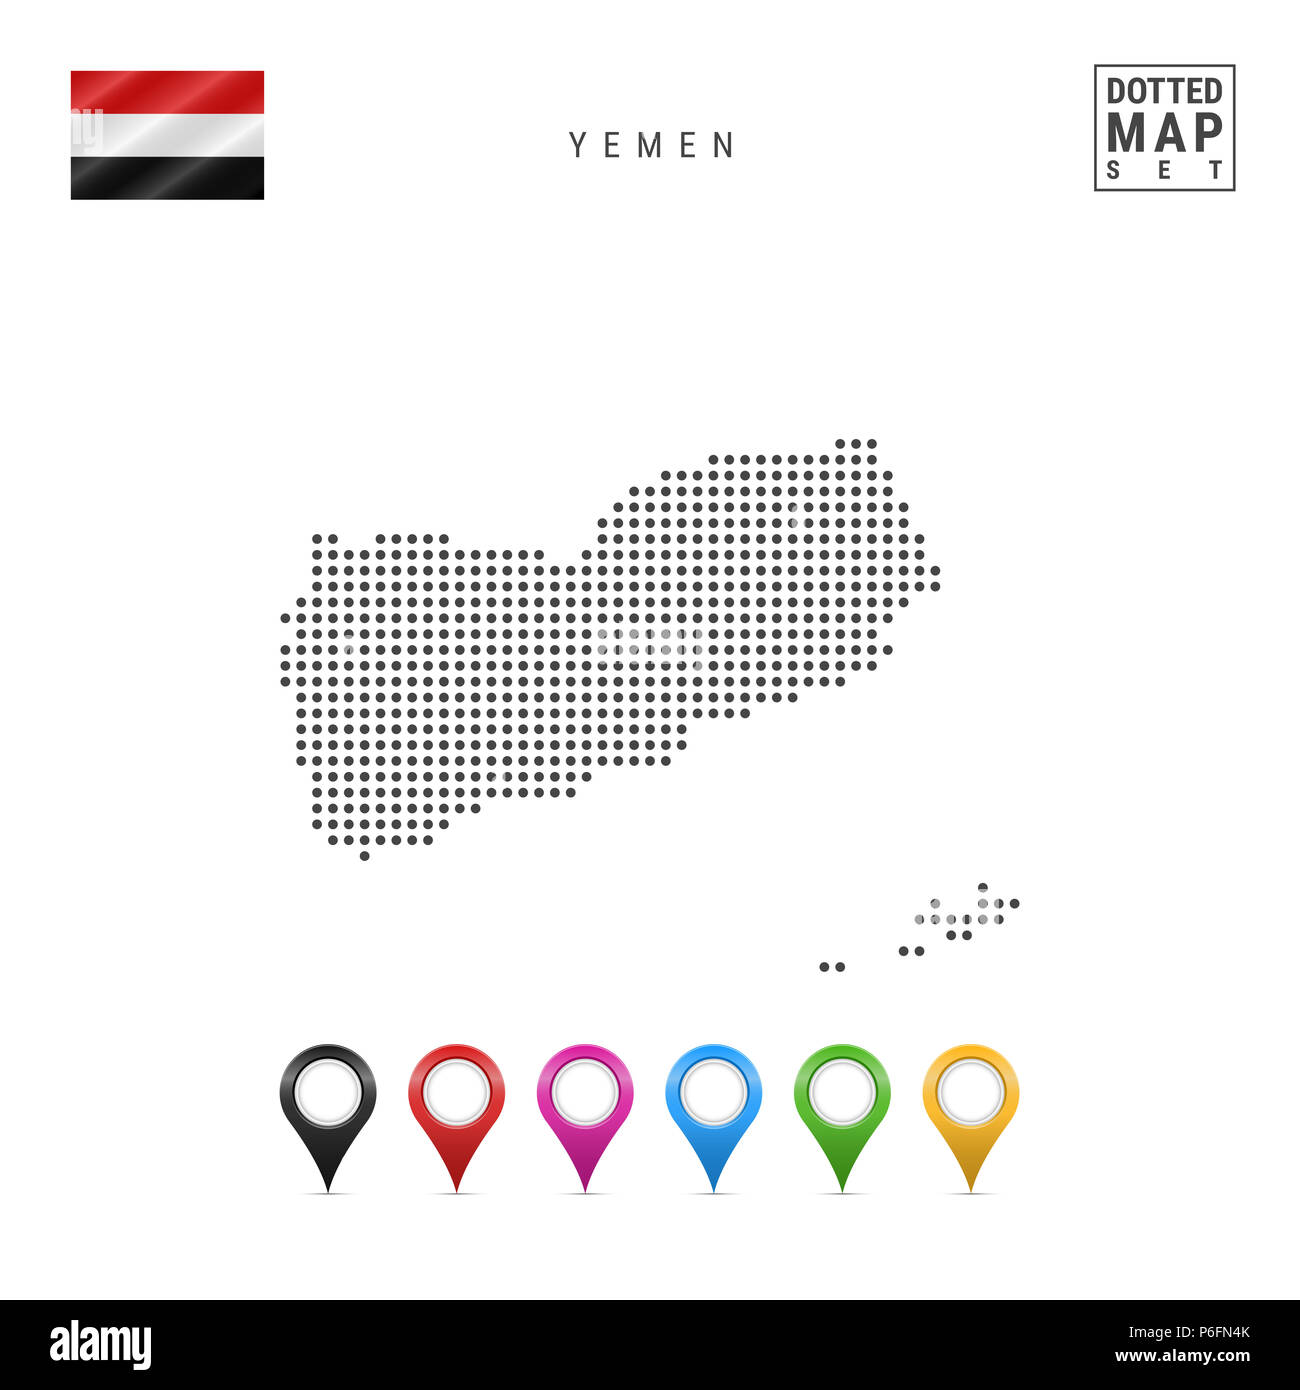 Dots Pattern Map of Yemen. Stylized Simple Silhouette of Yemen. The National Flag of Yemen. Set of Multicolored Map Markers. Illustration Isolated on  - Stock Image